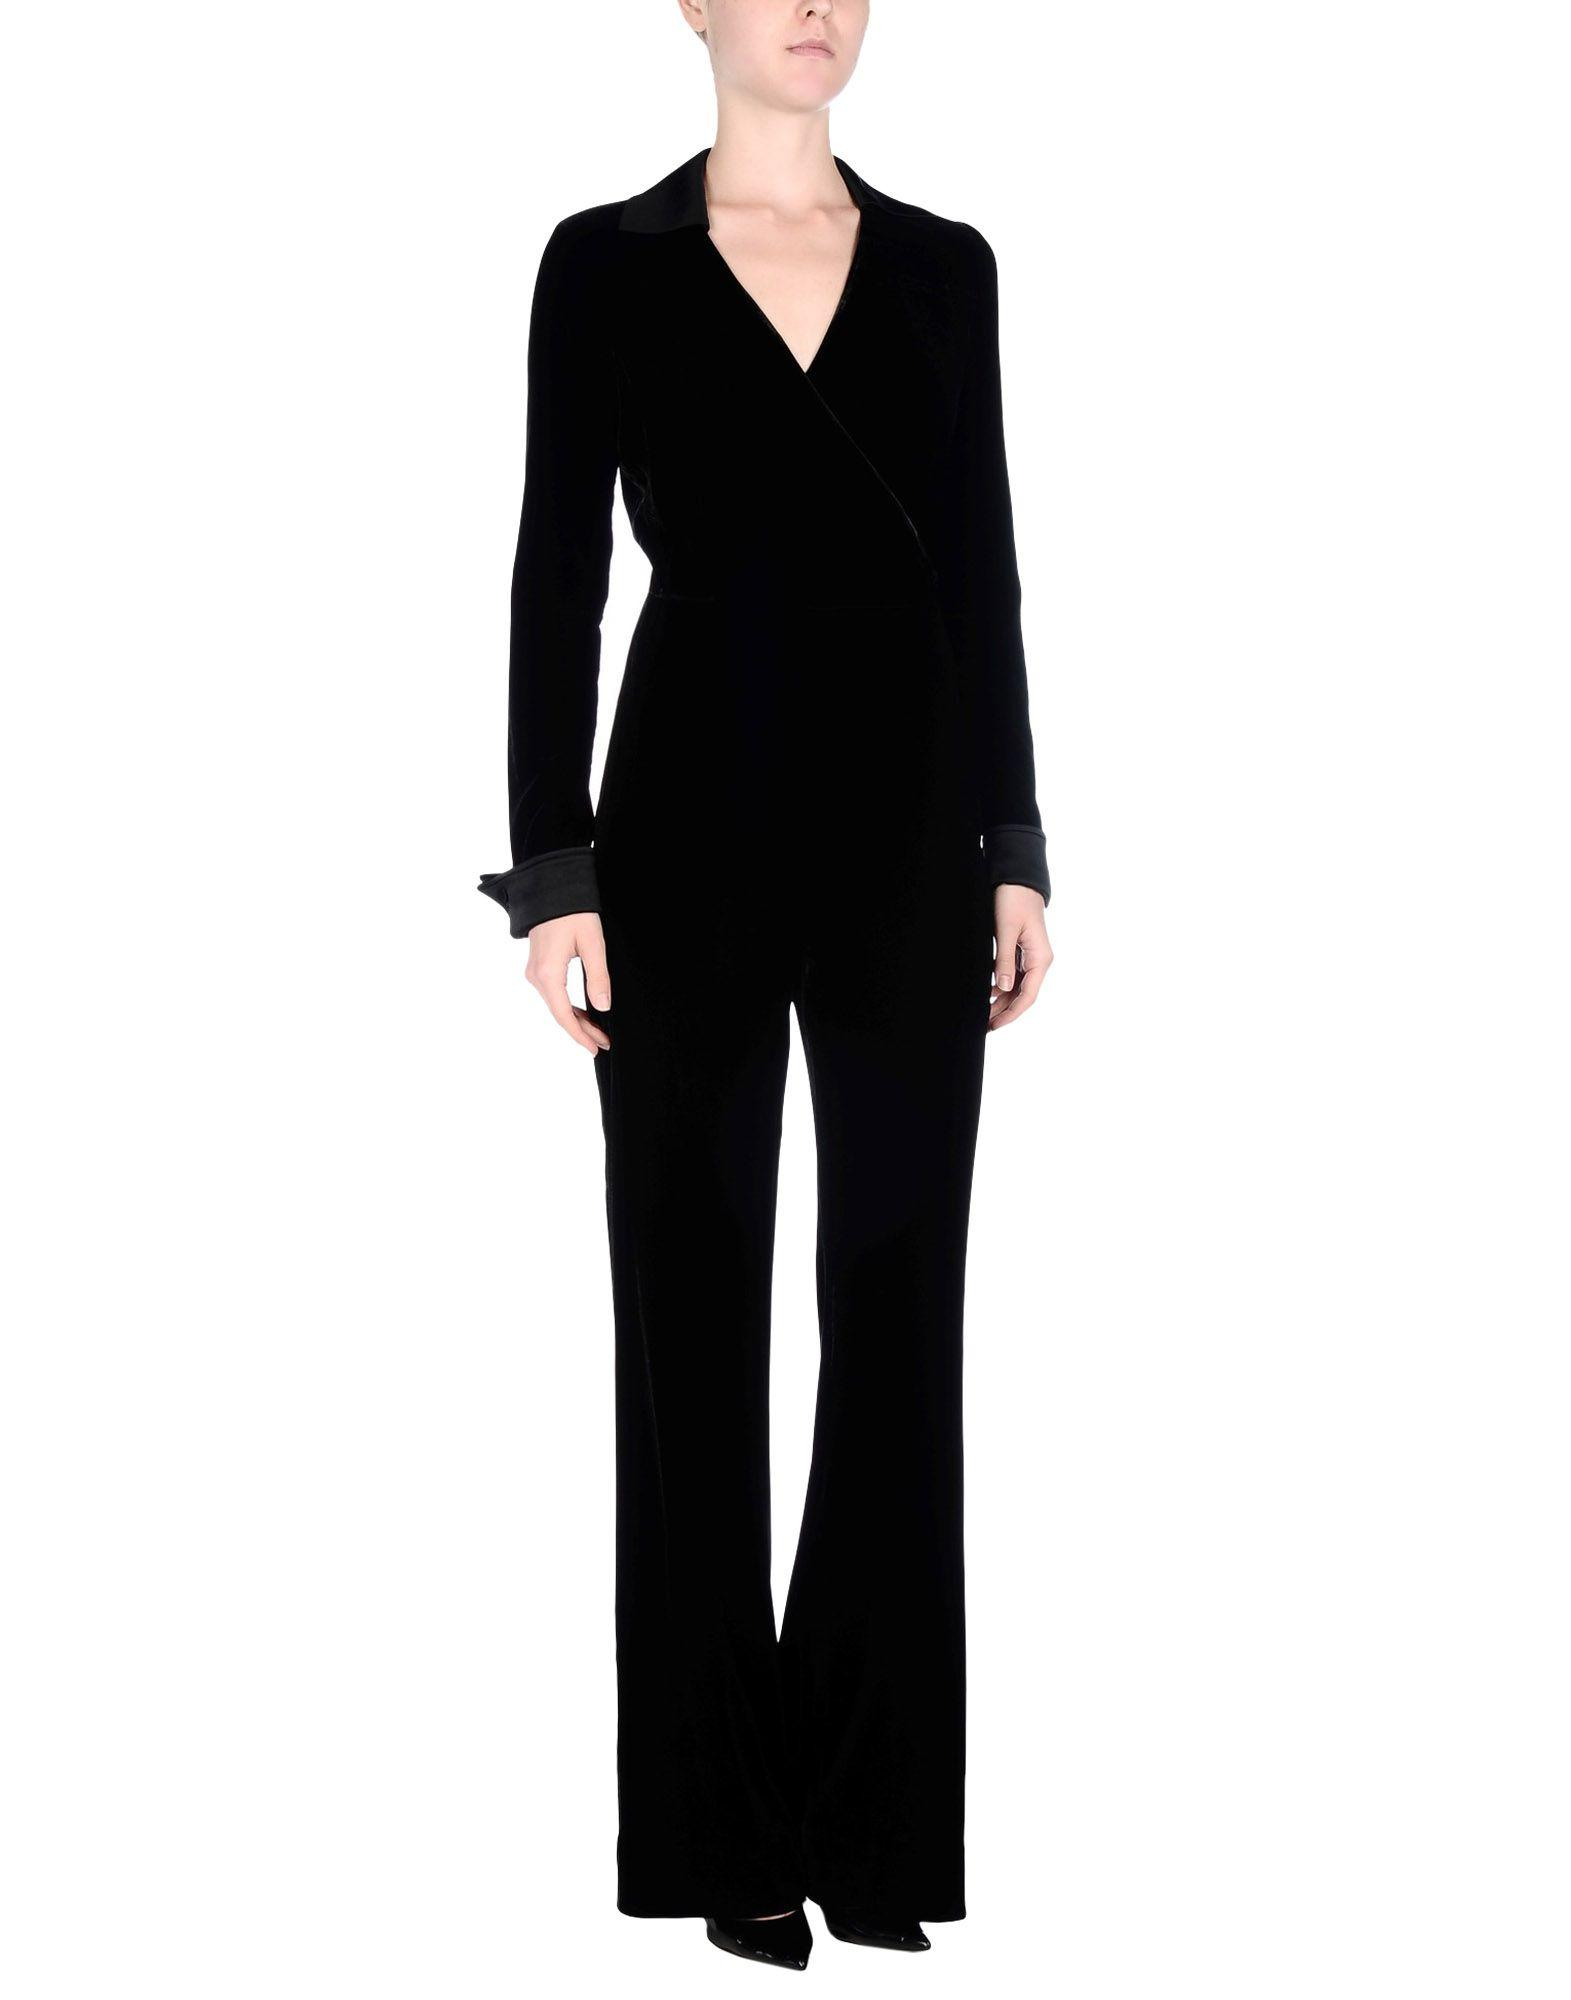 diane von furstenberg jumpsuit in black lyst. Black Bedroom Furniture Sets. Home Design Ideas